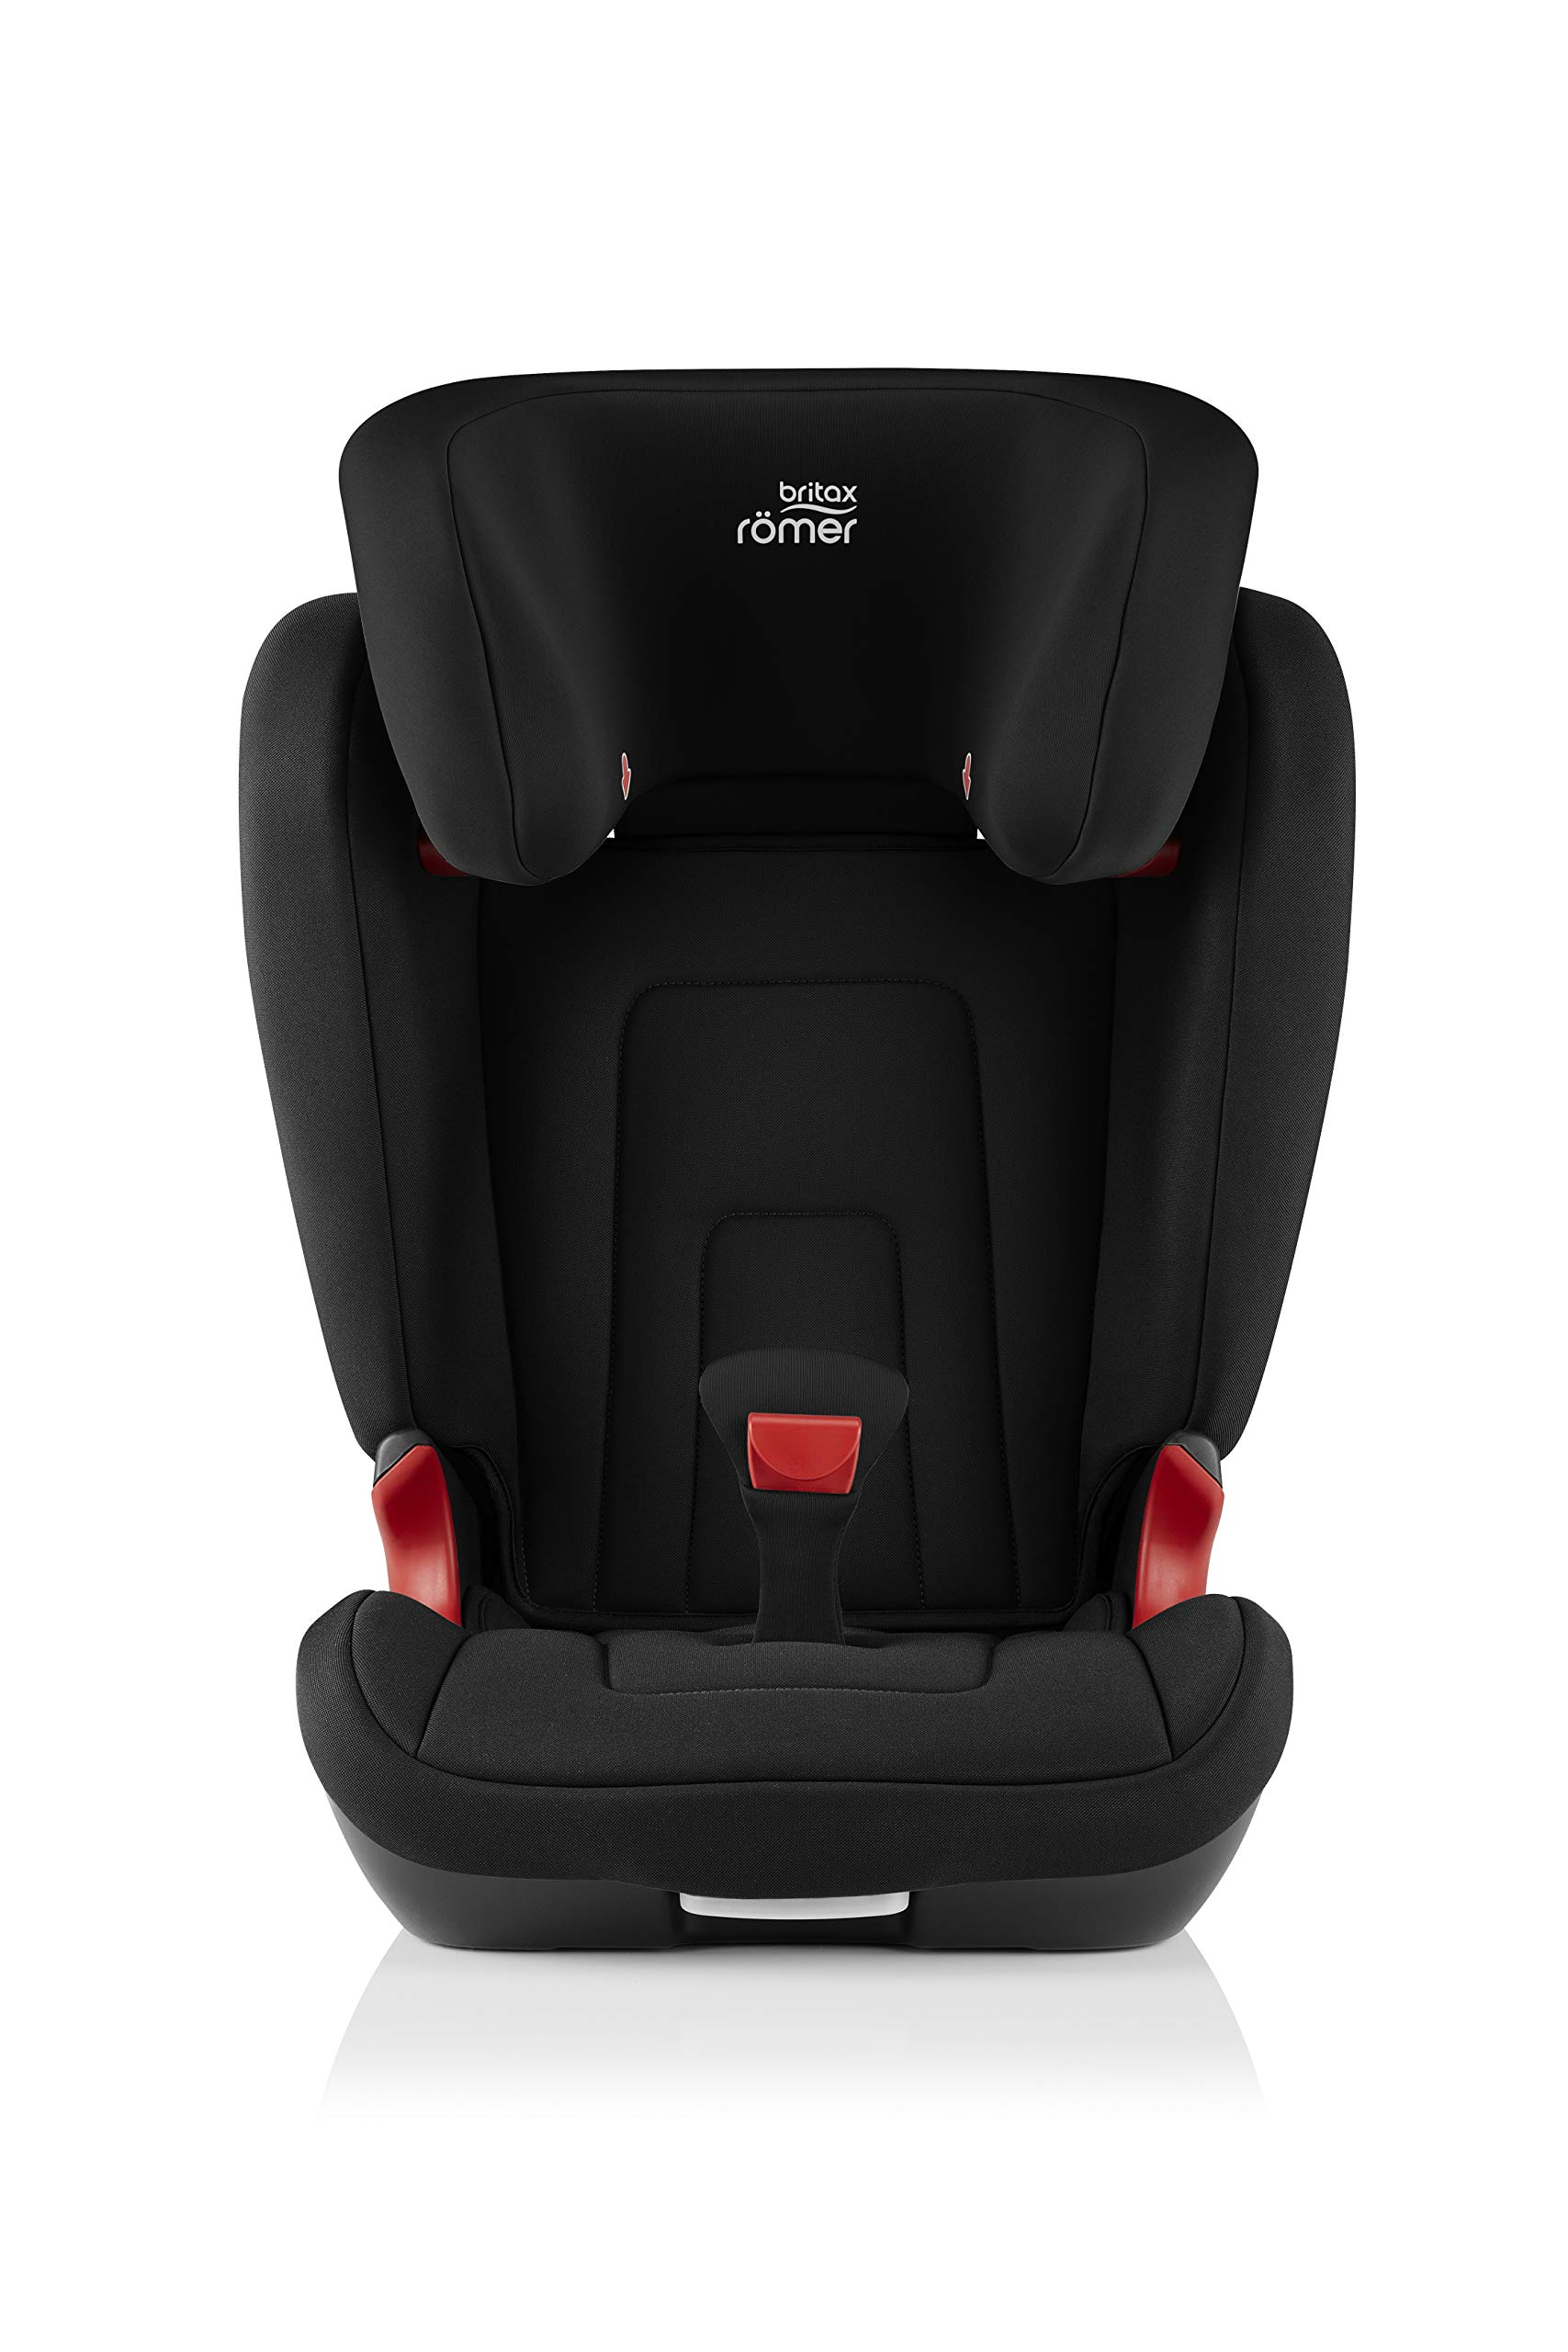 Britax Römer car seat 15-36 kg, KIDFIX 2 R Isofix group 2/3, Cosmos Black Britax Römer Secure guard - helps to protect your child's delicate abdominal area by adding an extra - a 4th - contact point to the 3-point seat belt. High back booster - protects your child in 3 ways: provides head to hip protection; belt guides provide correct positioning of the seat belt and the padded headrest provides safety and comfort. Easy adjustable v-shaped backrest - designed to give optimum support to your growing child, the v-shaped backrest provides more space for their back and shoulders. 2